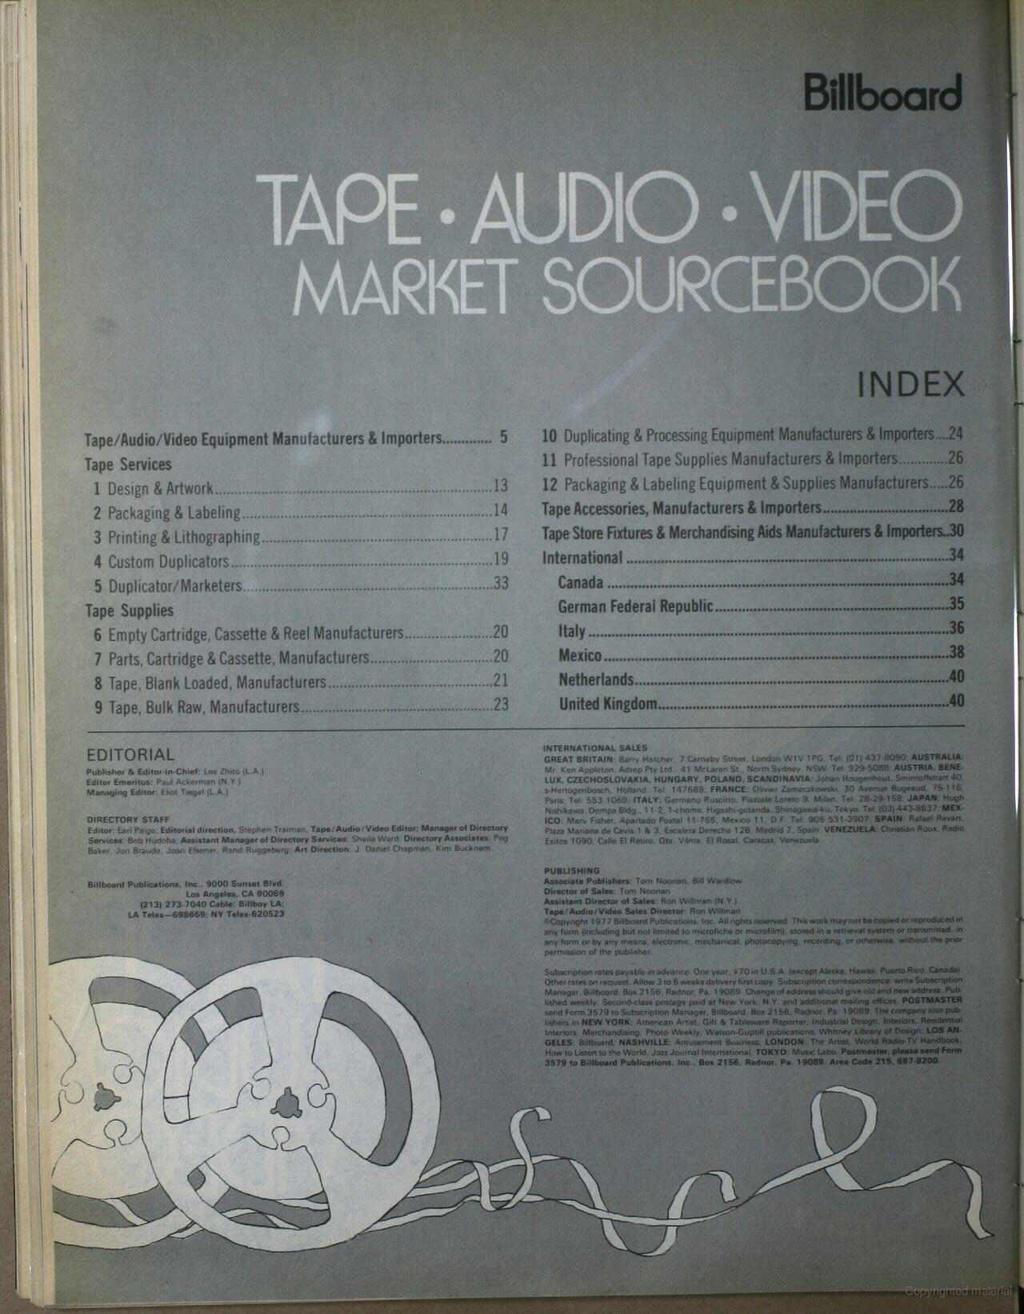 Billboard TAPE AUDIO VIDE MARKET SOURCEBOOK t!